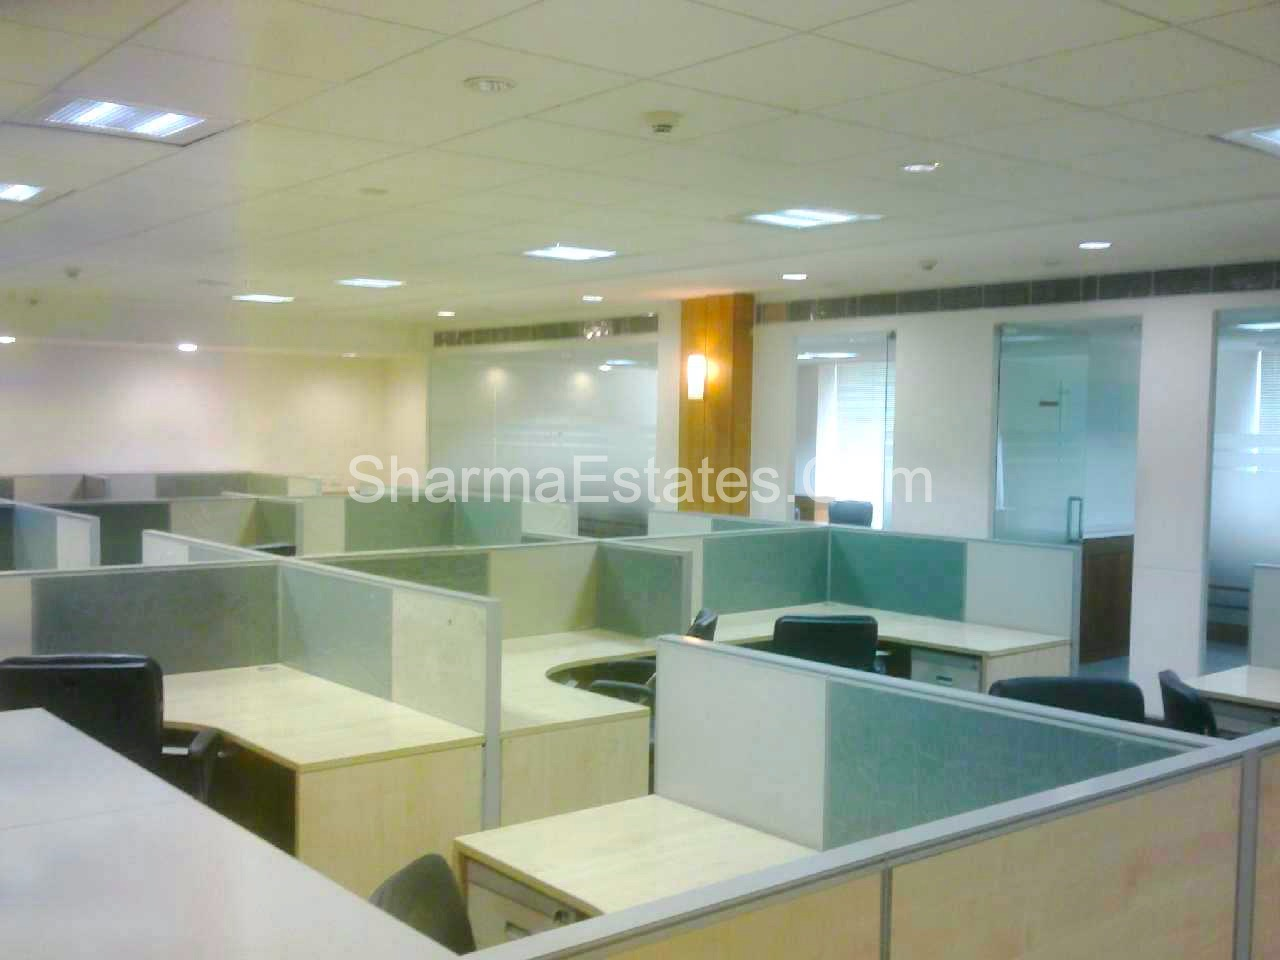 2,500 Sq.Ft. Furnished Office For Rent/ Lease in Okhla Industrial Estate, Phase-3, New Delhi | Commercial Space Near Metro